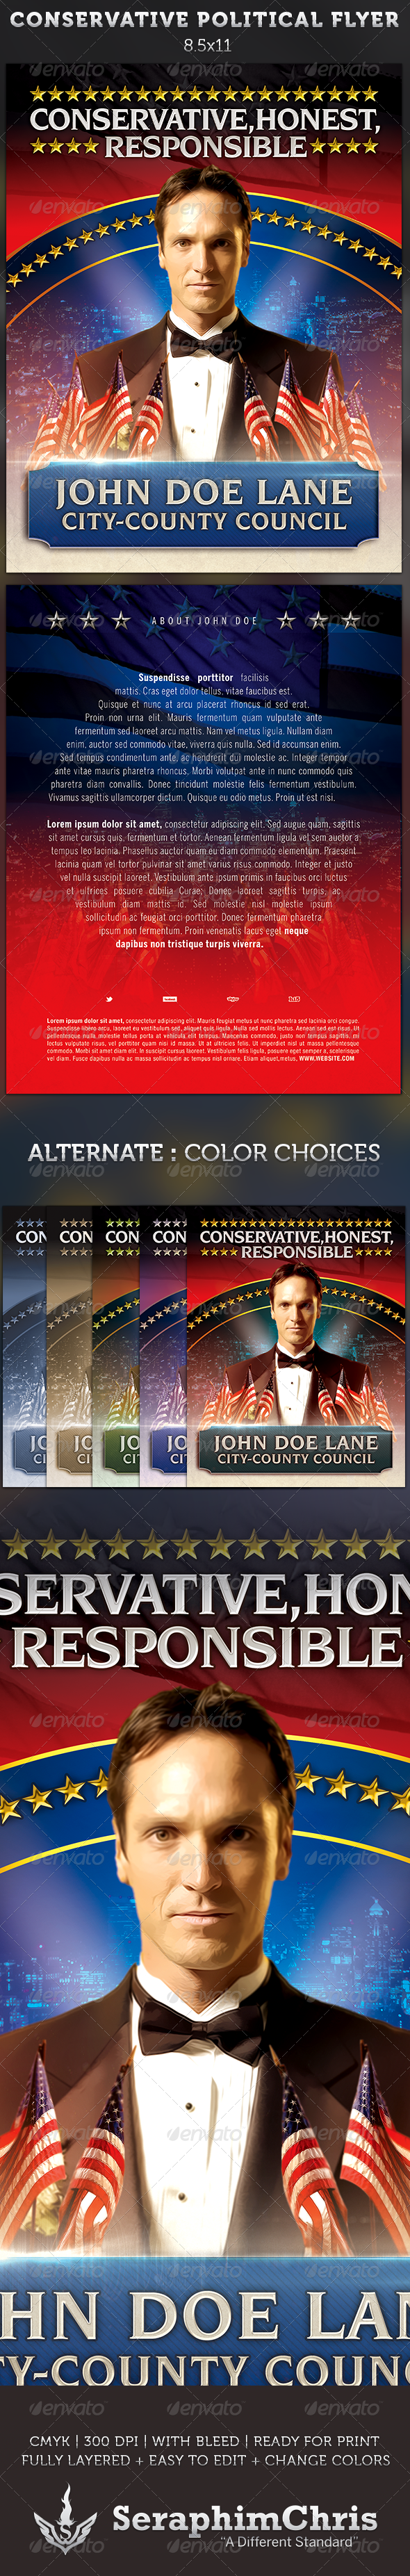 Conservative Political Flyer Template - Corporate Flyers